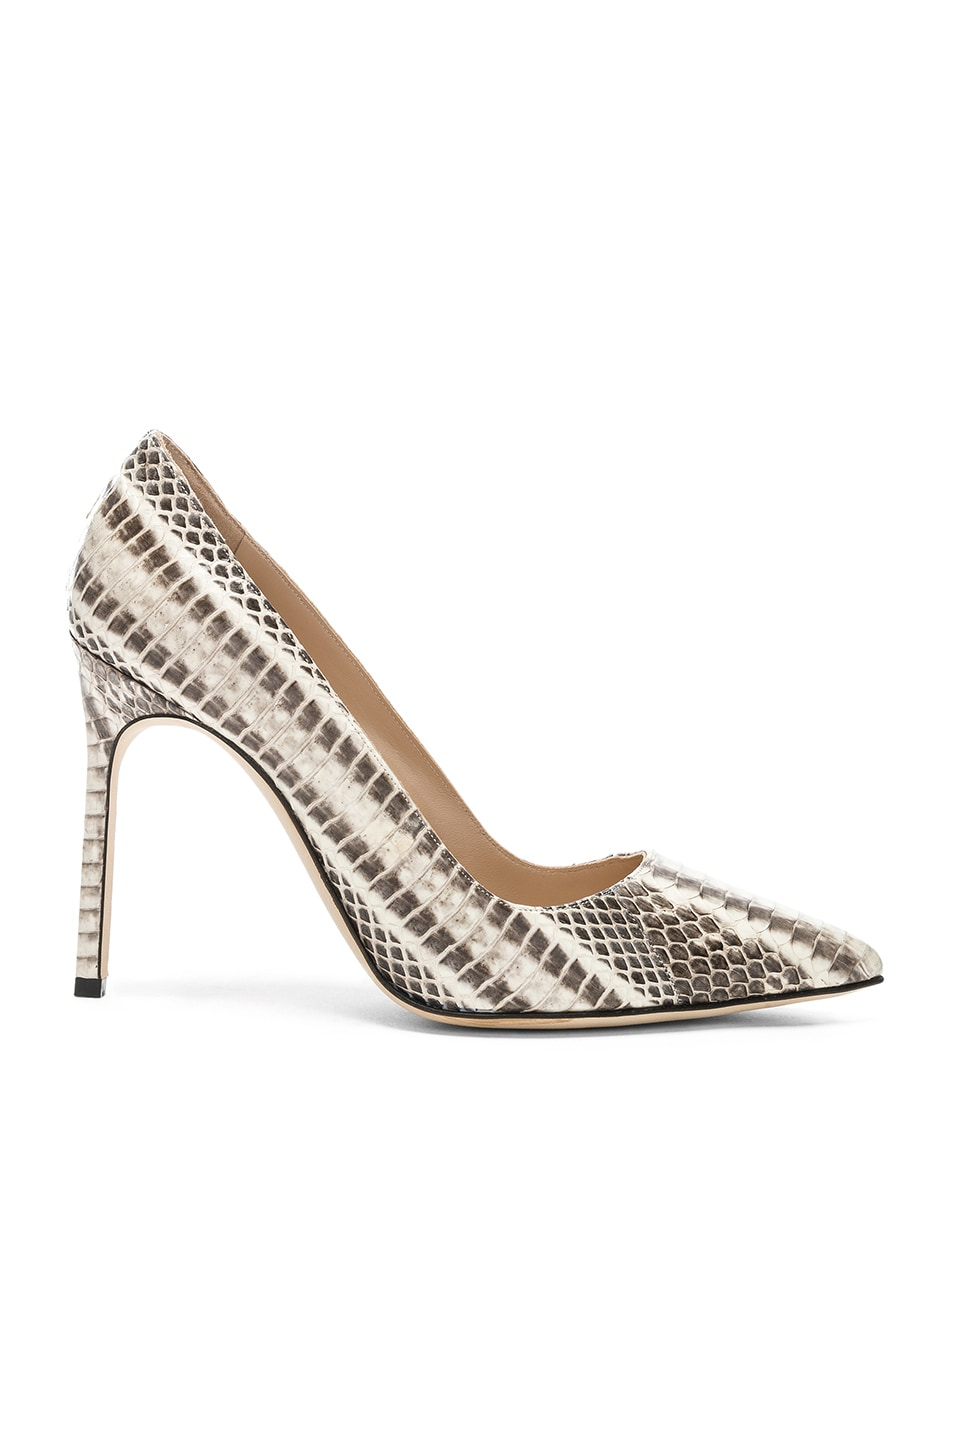 Image 1 of Manolo Blahnik BB Watersnake 105 Heel in Black & White